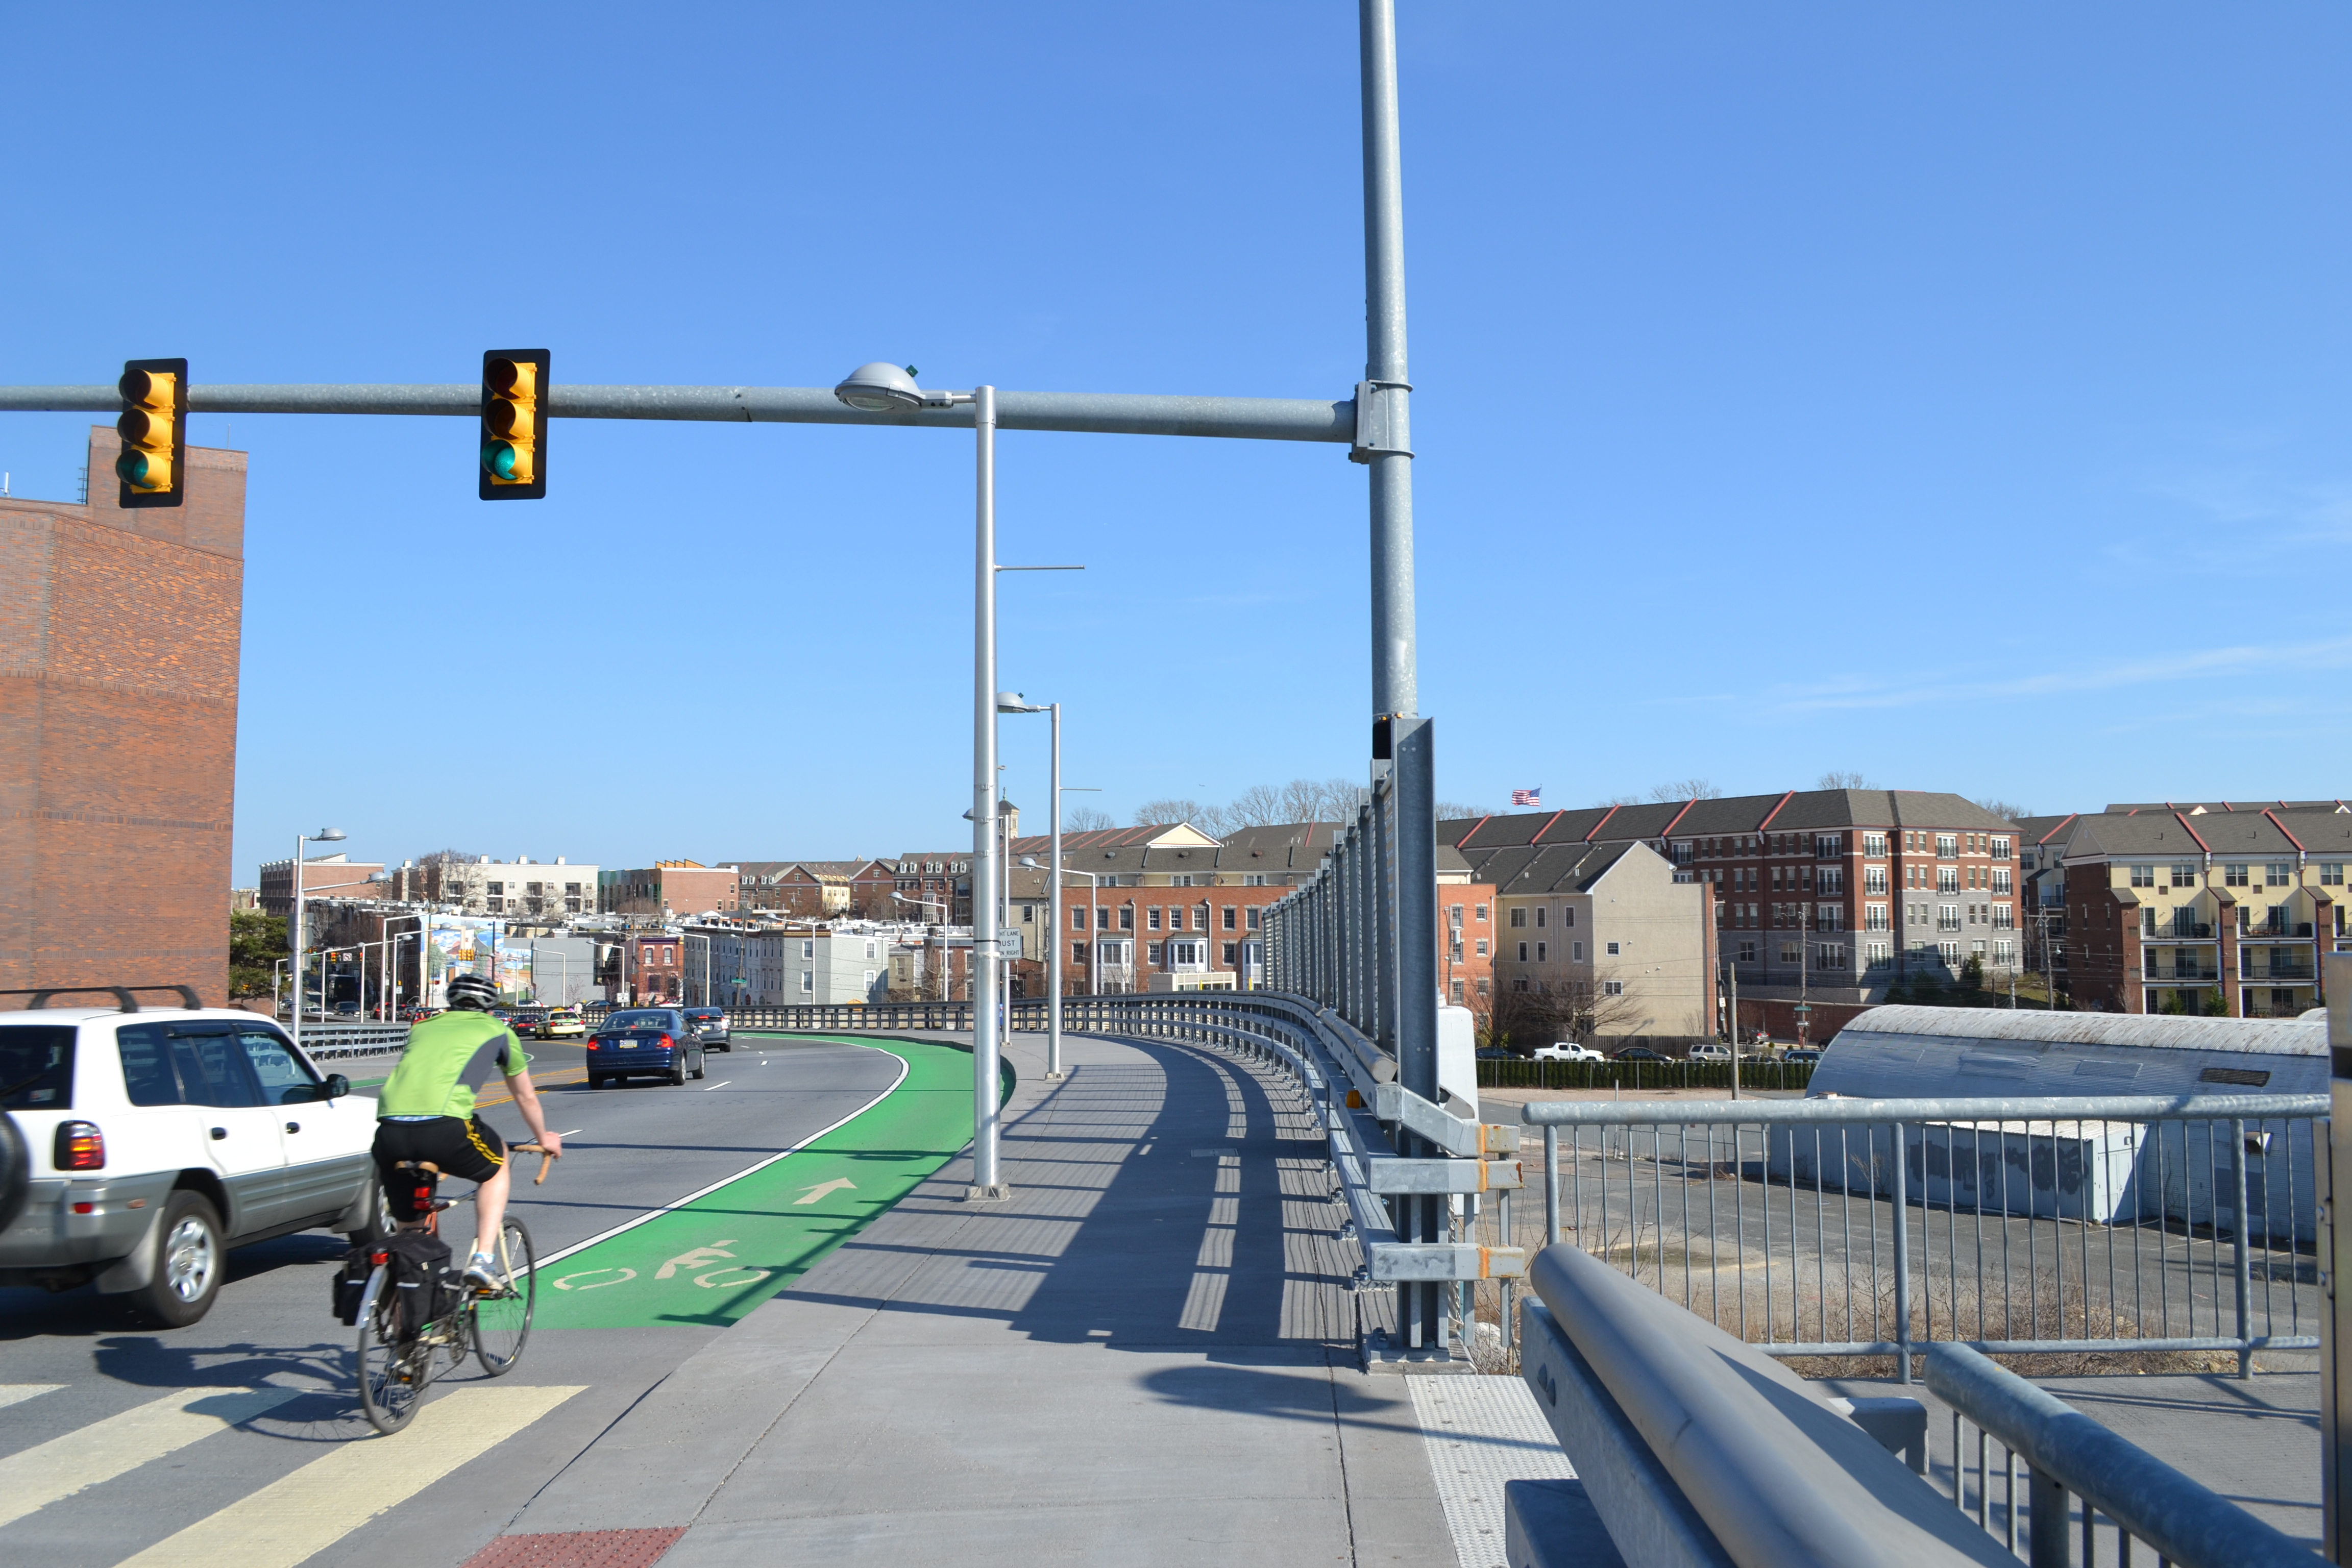 The Bicycle Coalition of Greater Philadelphia wants to shift the bike lanes closer to the top of the bridge to reduce conflicts with the proposed driveways